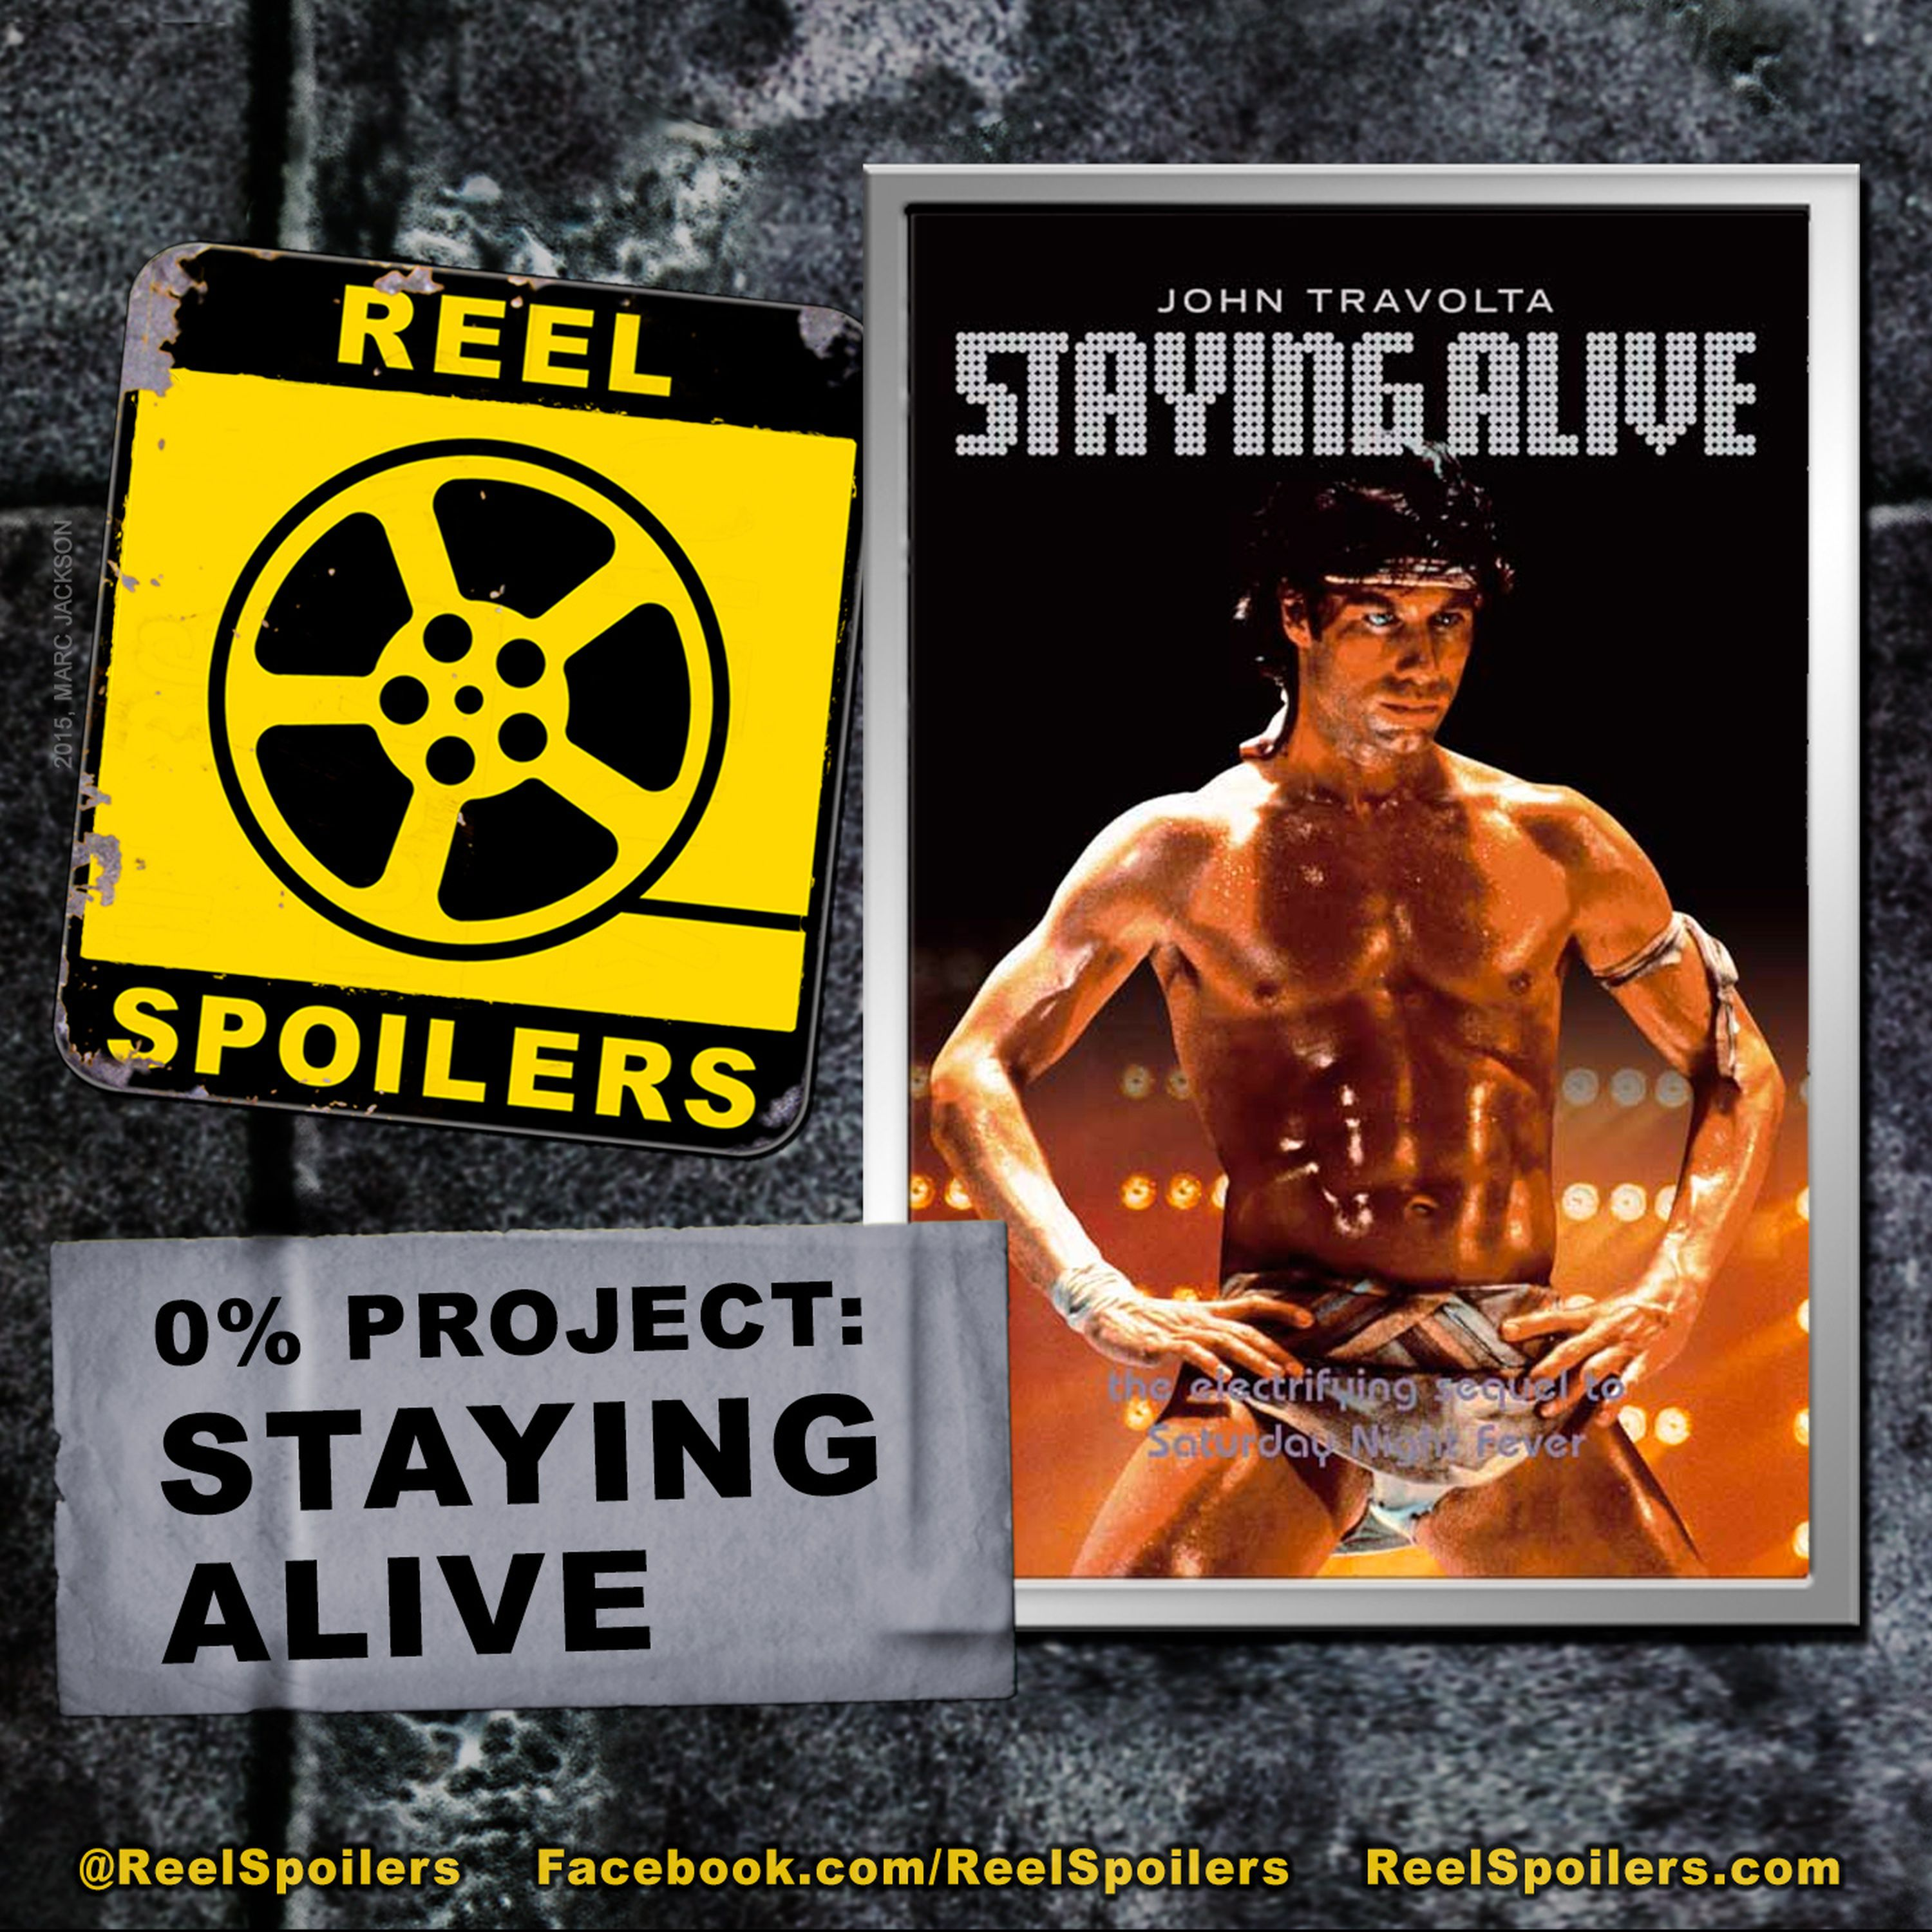 0% Project: STAYING ALIVE Starring John Travolta